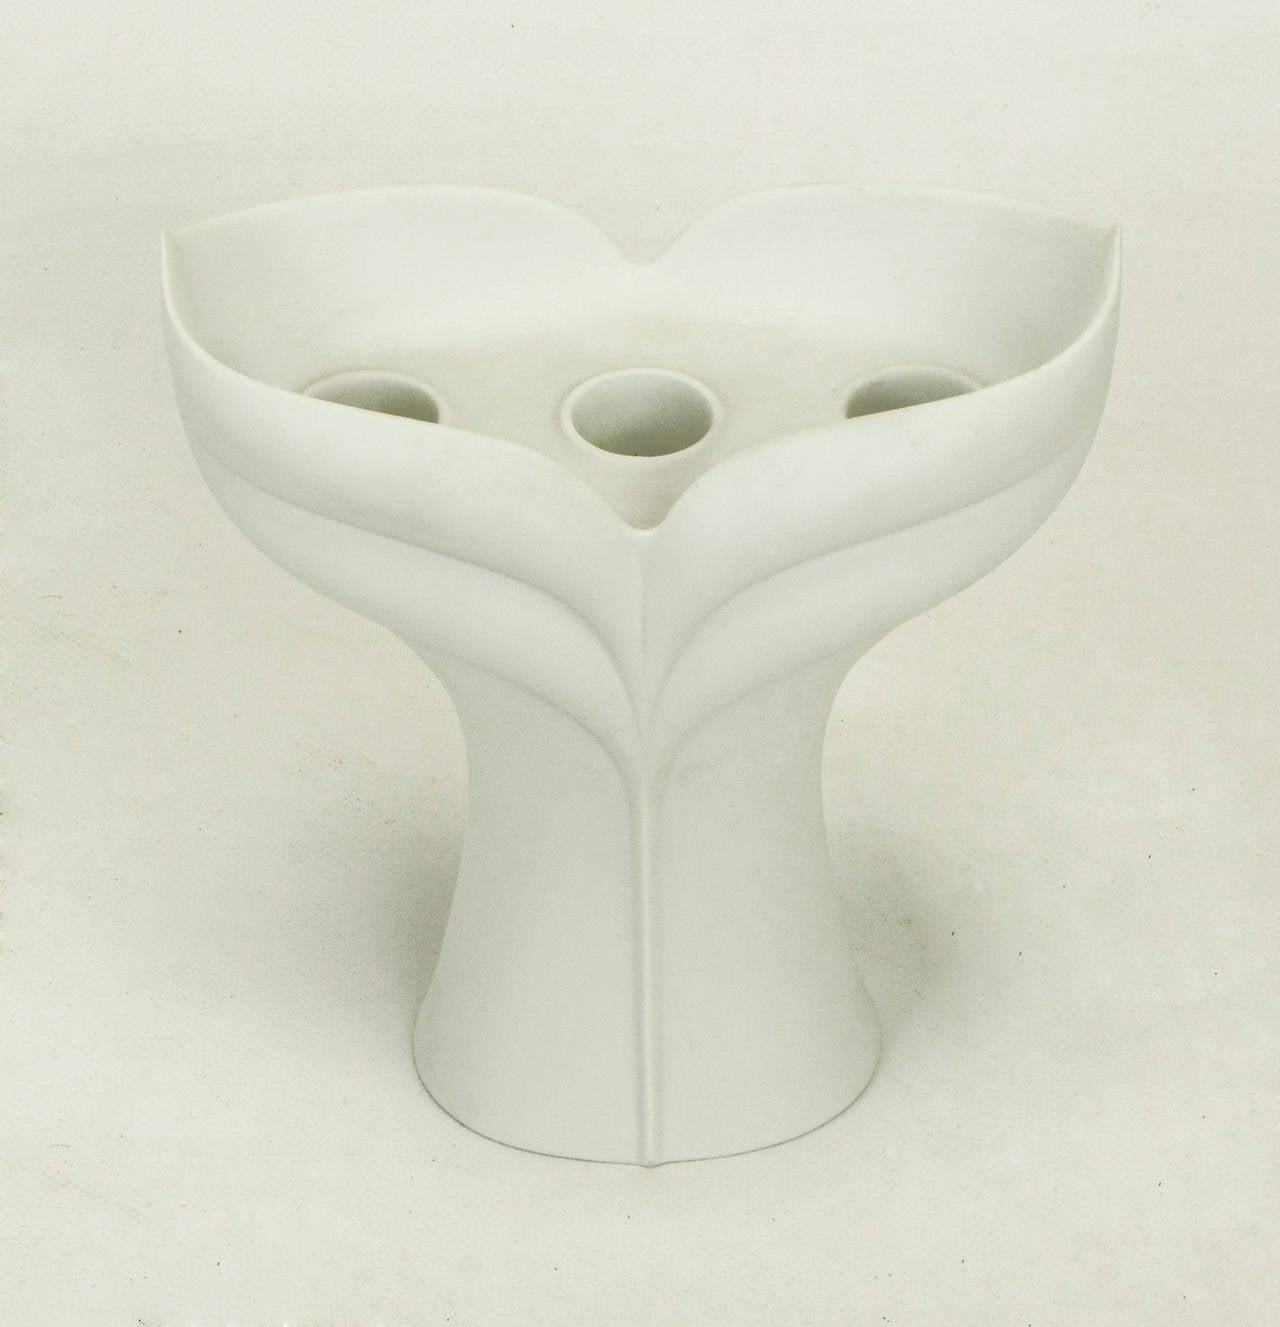 Pair of Uta Feyl White Matte Porcelain Candelabrum for Rosenthal Studio Linie For Sale 2